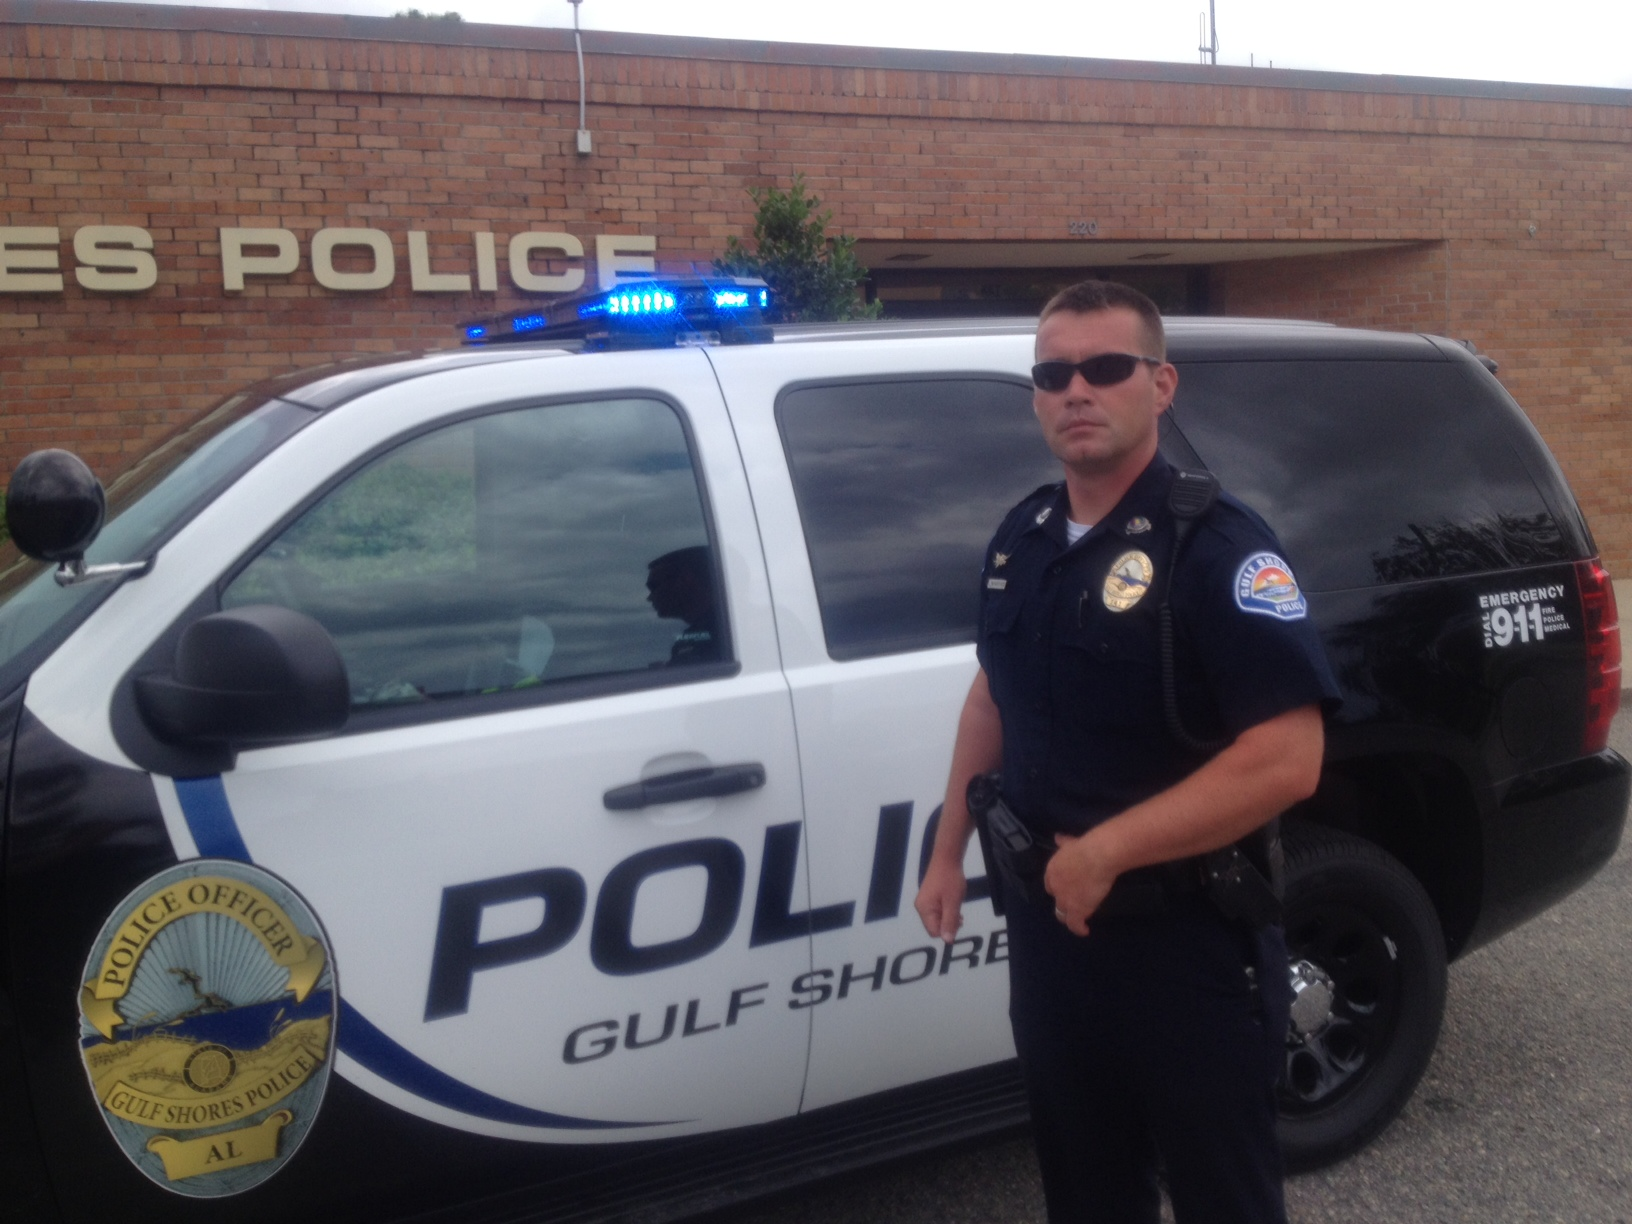 Gulf Shores Police Department